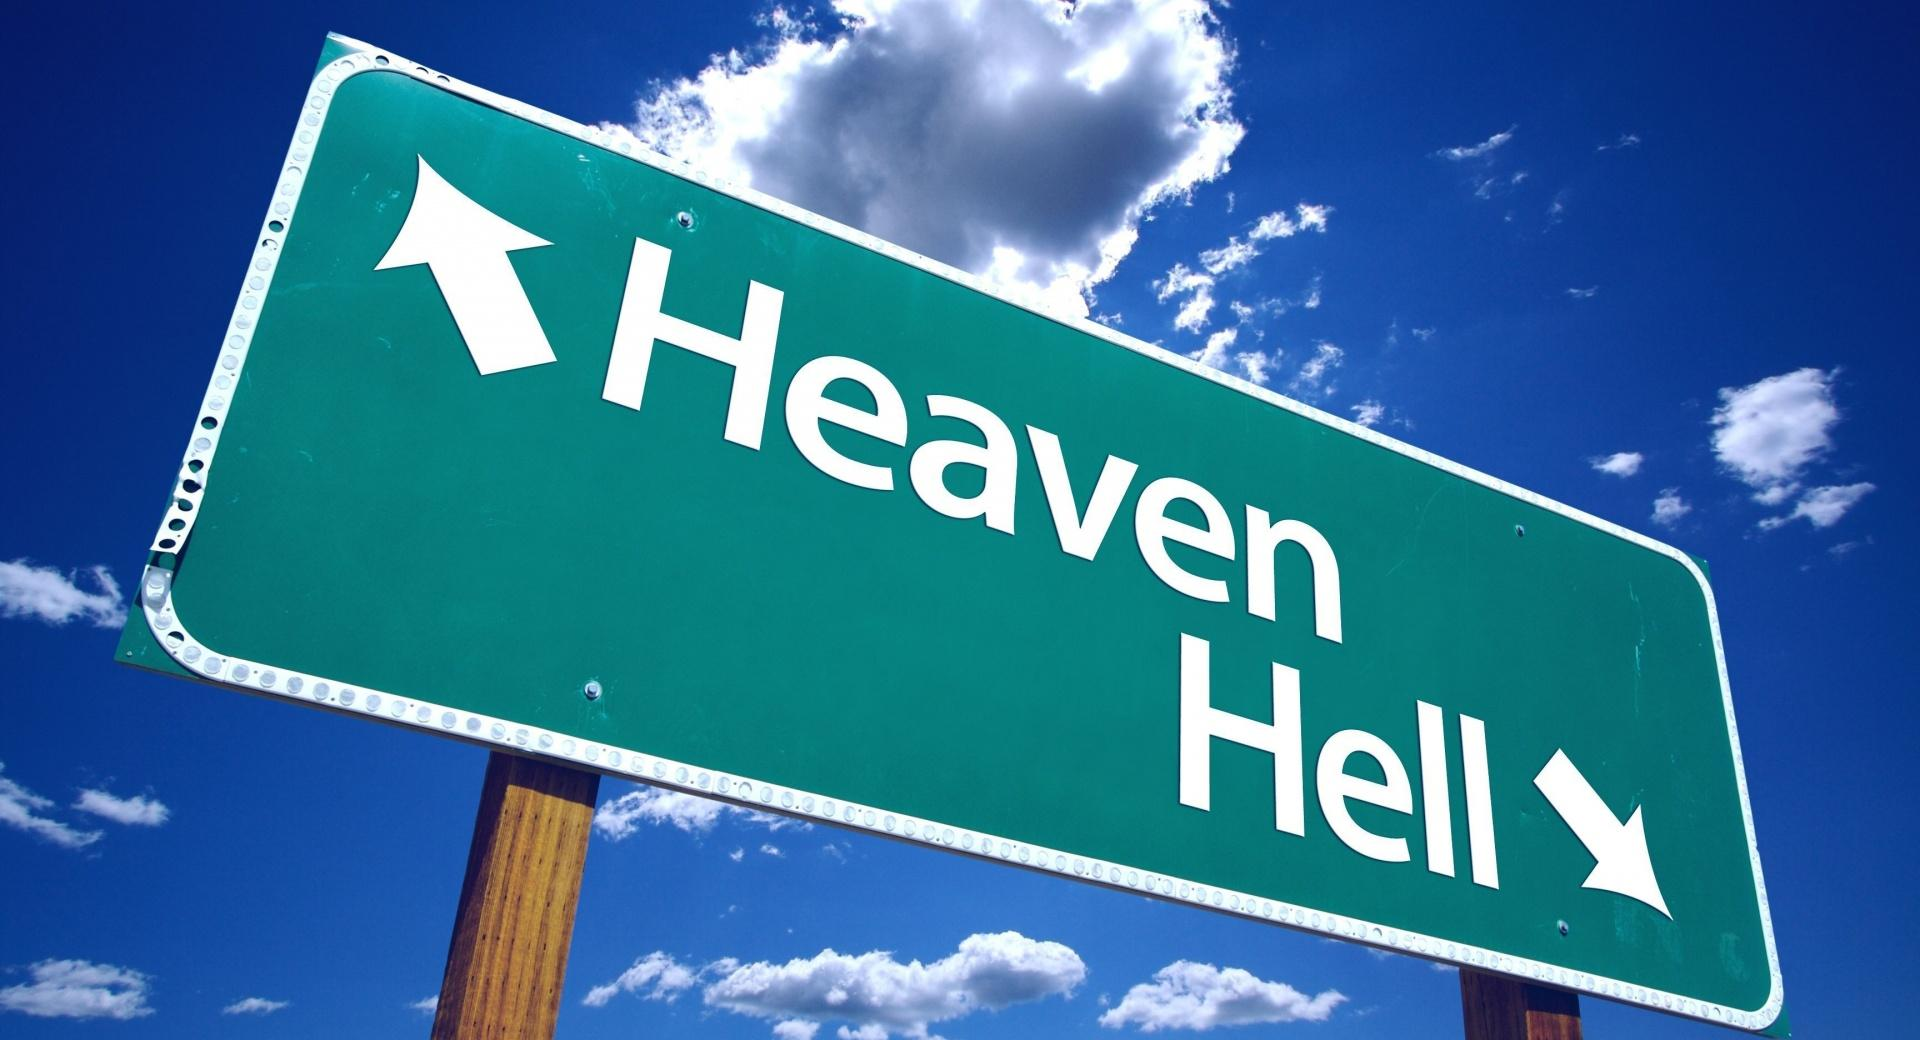 Heaven And Hell Sign wallpapers HD quality